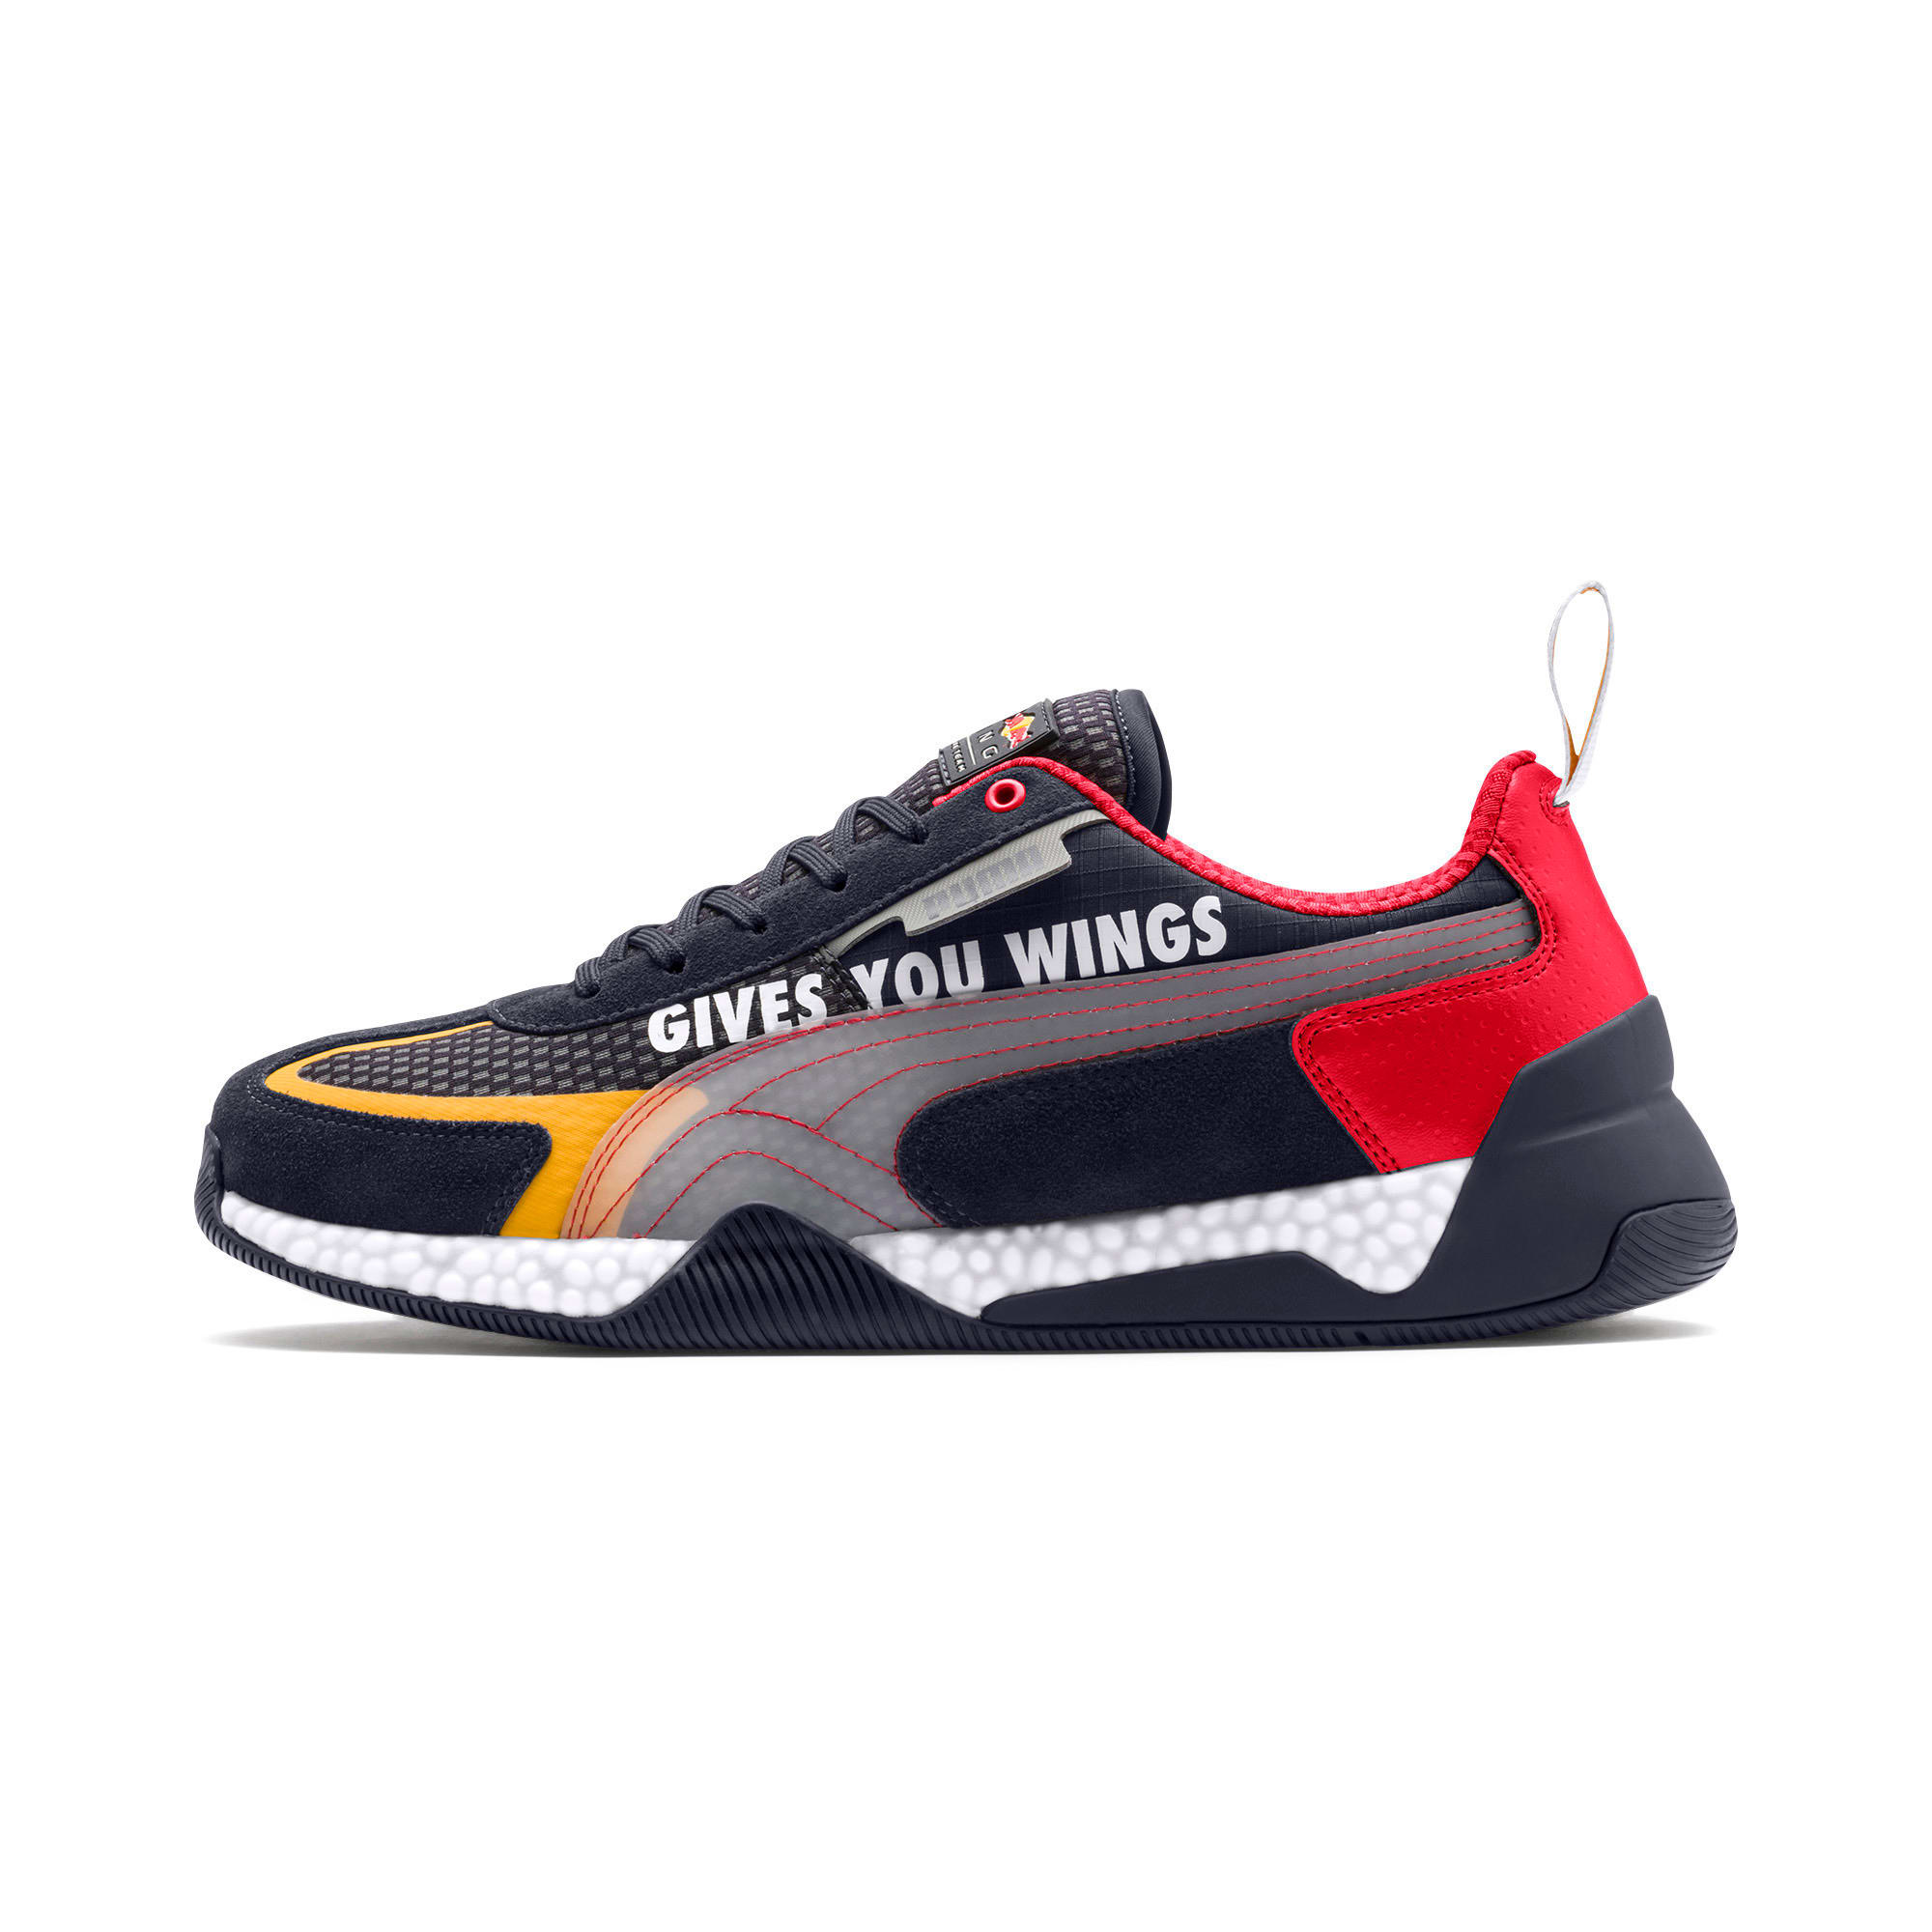 Thumbnail 1 of Red Bull Racing Speed HYBRID Men's Trainers, NIGHT SKY-White-Chinese Red, medium